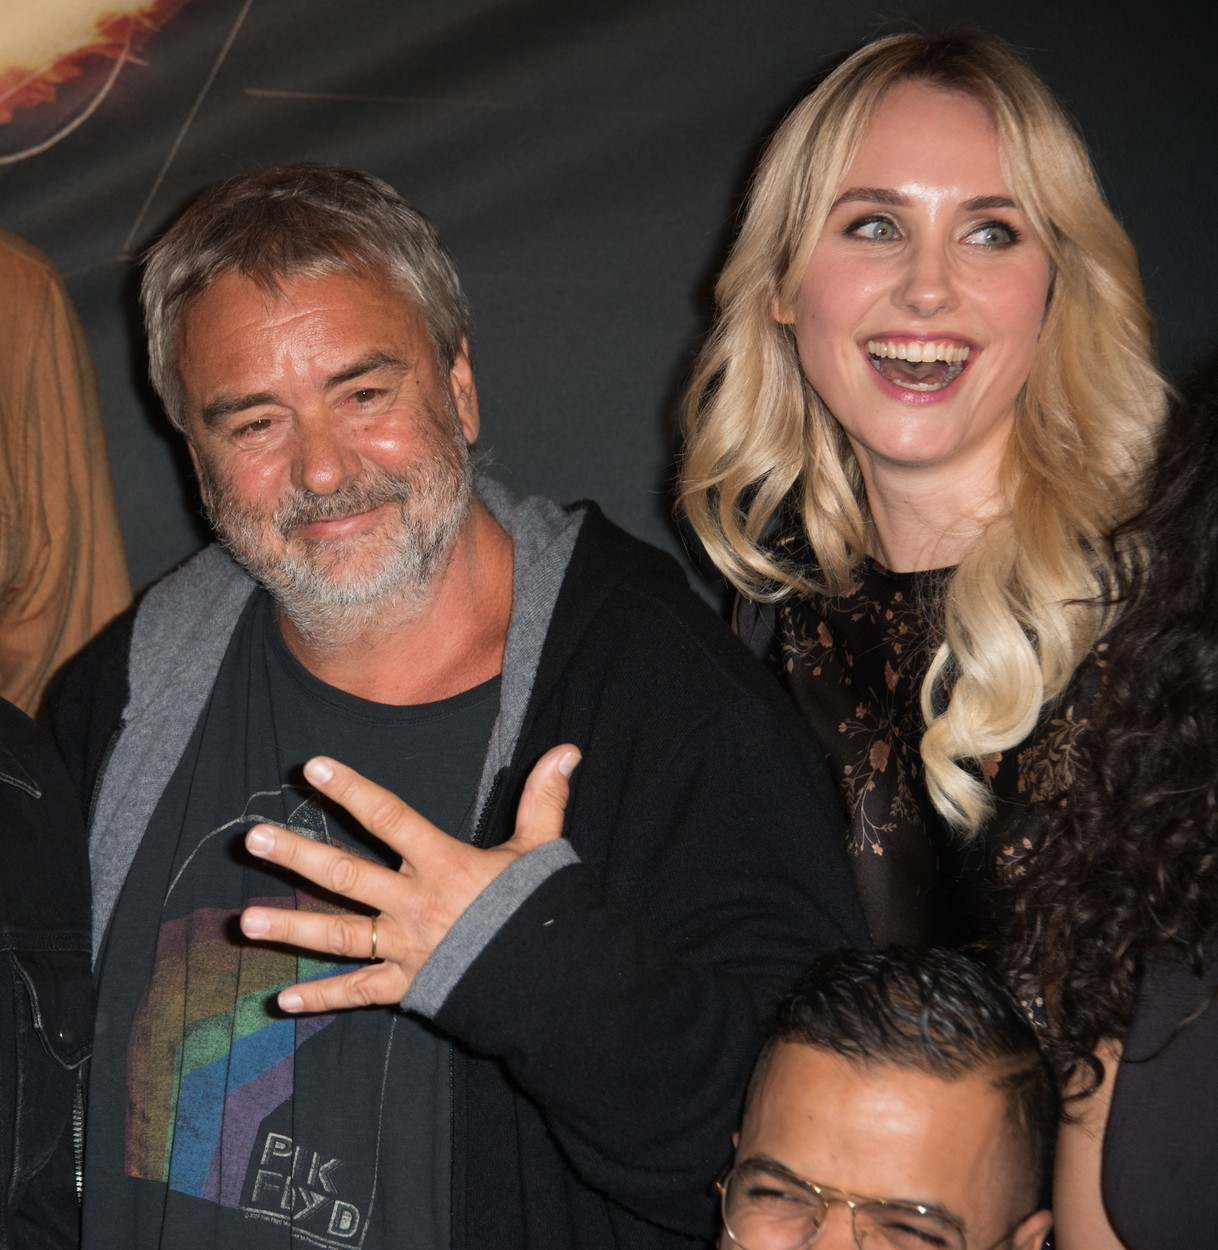 Filmmaker Luc Besson accused of rape by the actress Sand Van Roy - Luc Besson attending the Taxi 5 movie premiere with Sand Van Roy assistent at the Grand Rex in Paris, France, on April 8, 2018., Image: 372607000, License: Rights-managed, Restrictions: , Model Release: no, Credit line: Wyters Alban/ABACA / Abaca Press / Profimedia